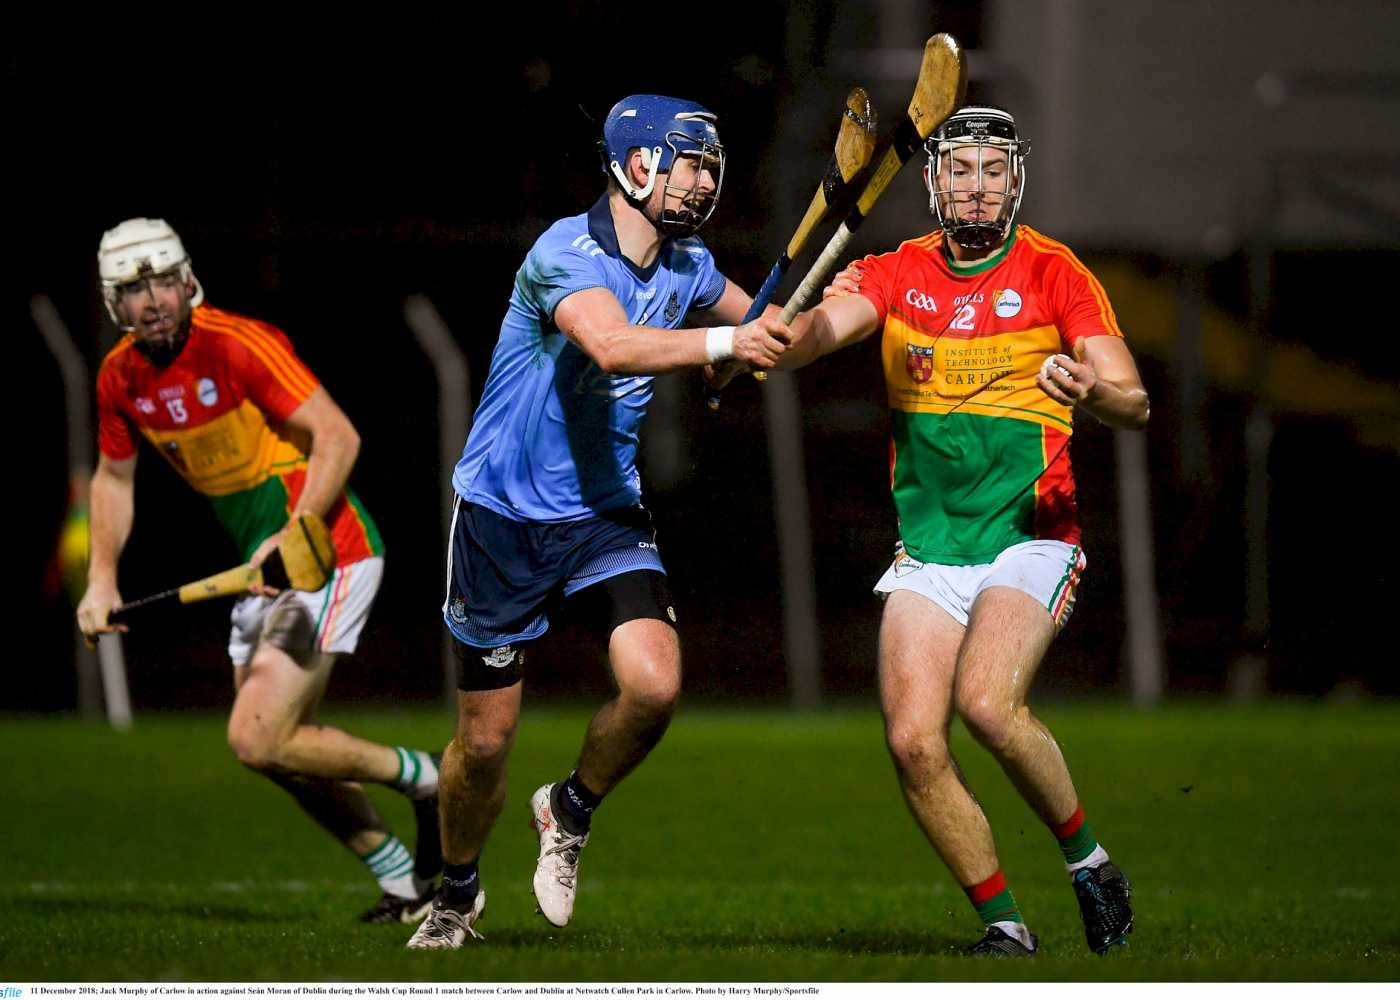 Hetherton points way as Dubs defeat Carlow in Walsh Cup